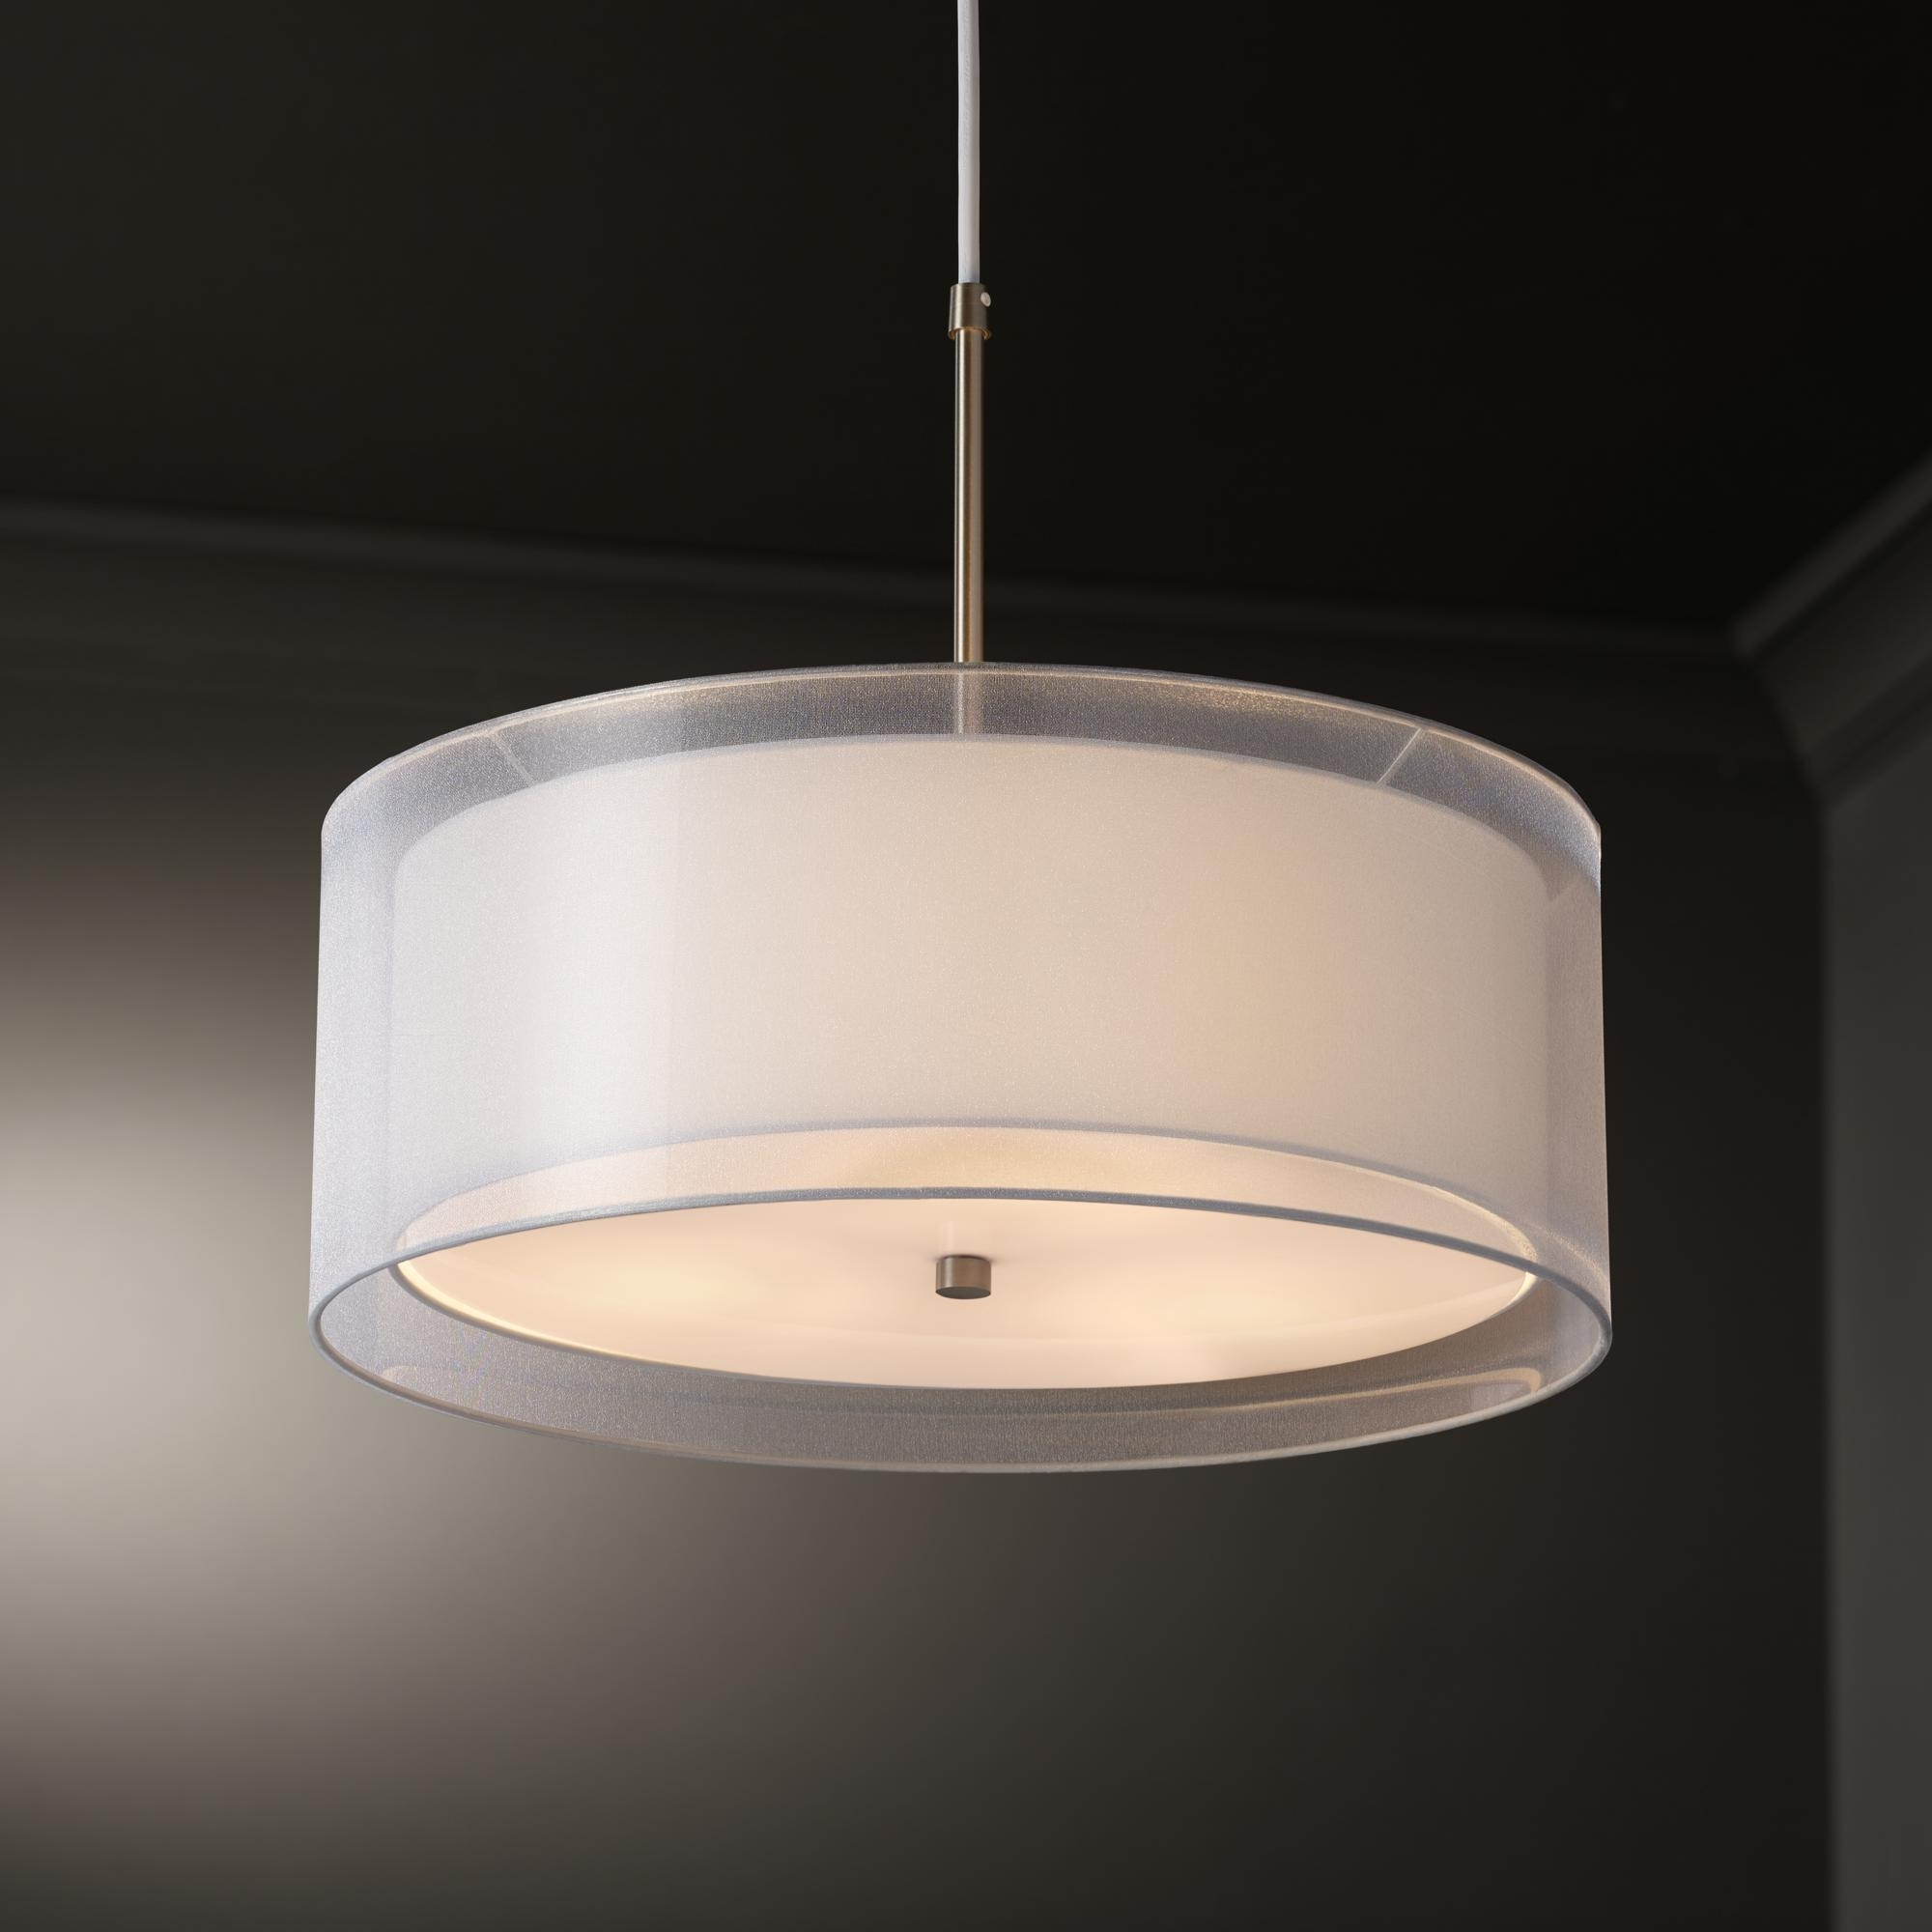 Preferred Drum Lamp Shades For Chandeliers With Lighting: Drum Lamp Shades For Chandeliers And Black Drum Shade (View 15 of 20)